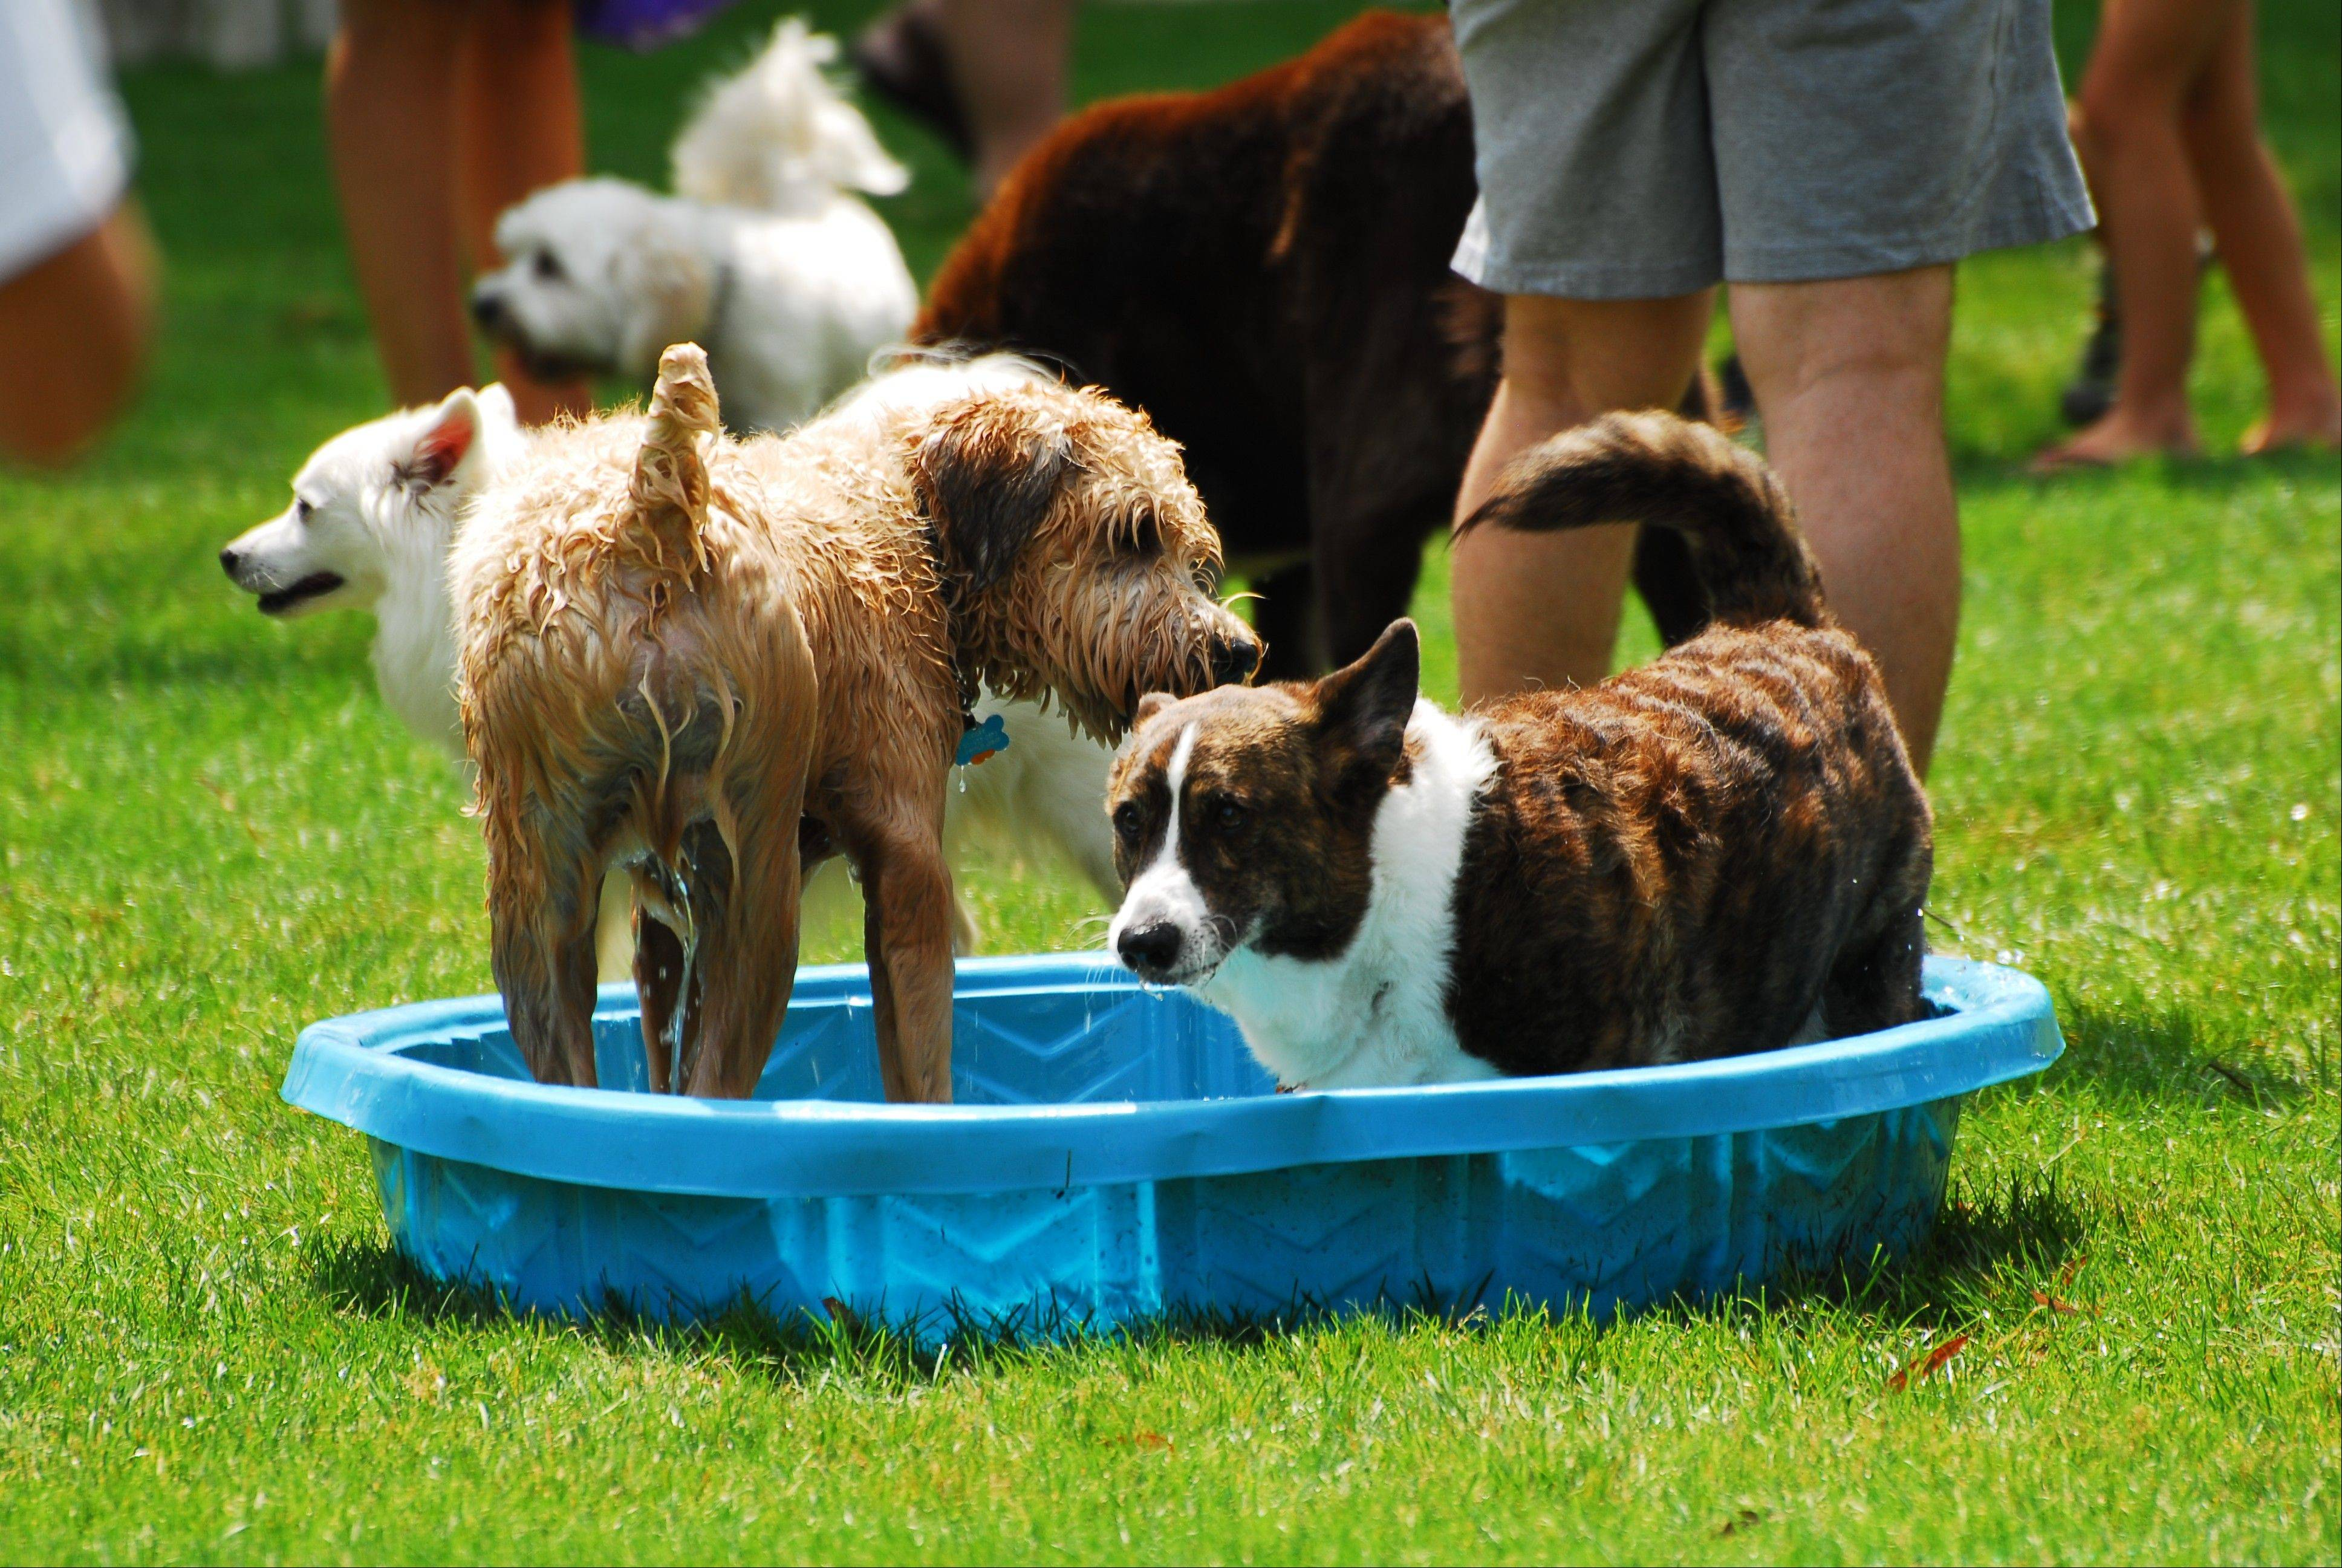 Dogs keep cool in the splash park area during the Dog Days event at Cantigny Park.